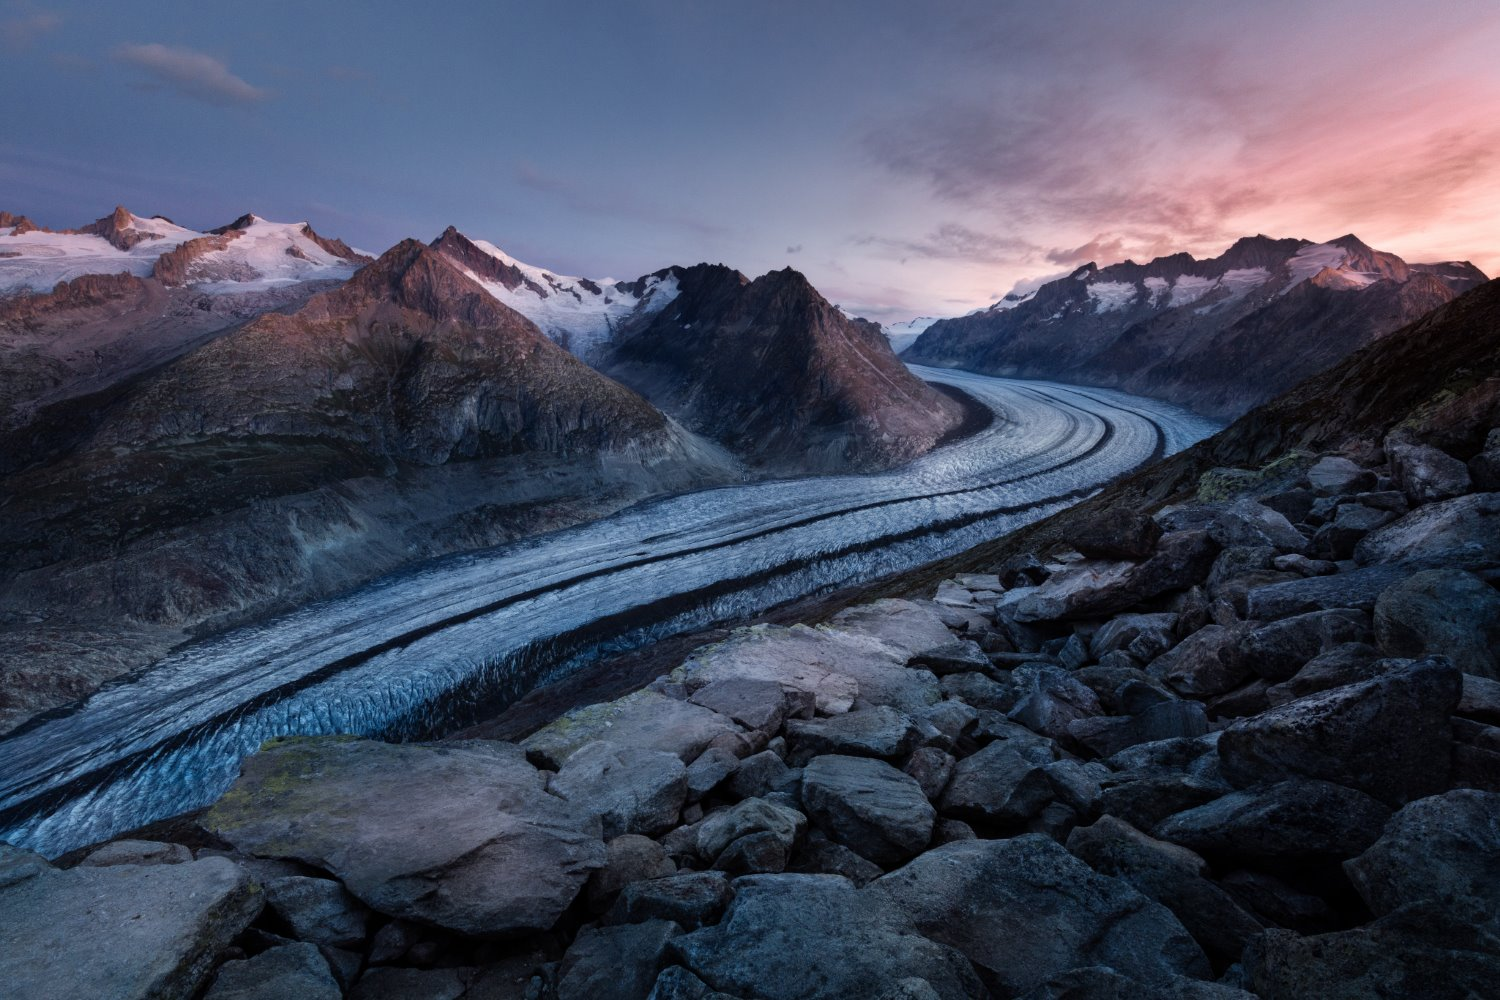 landscape photography tips winding mountain road